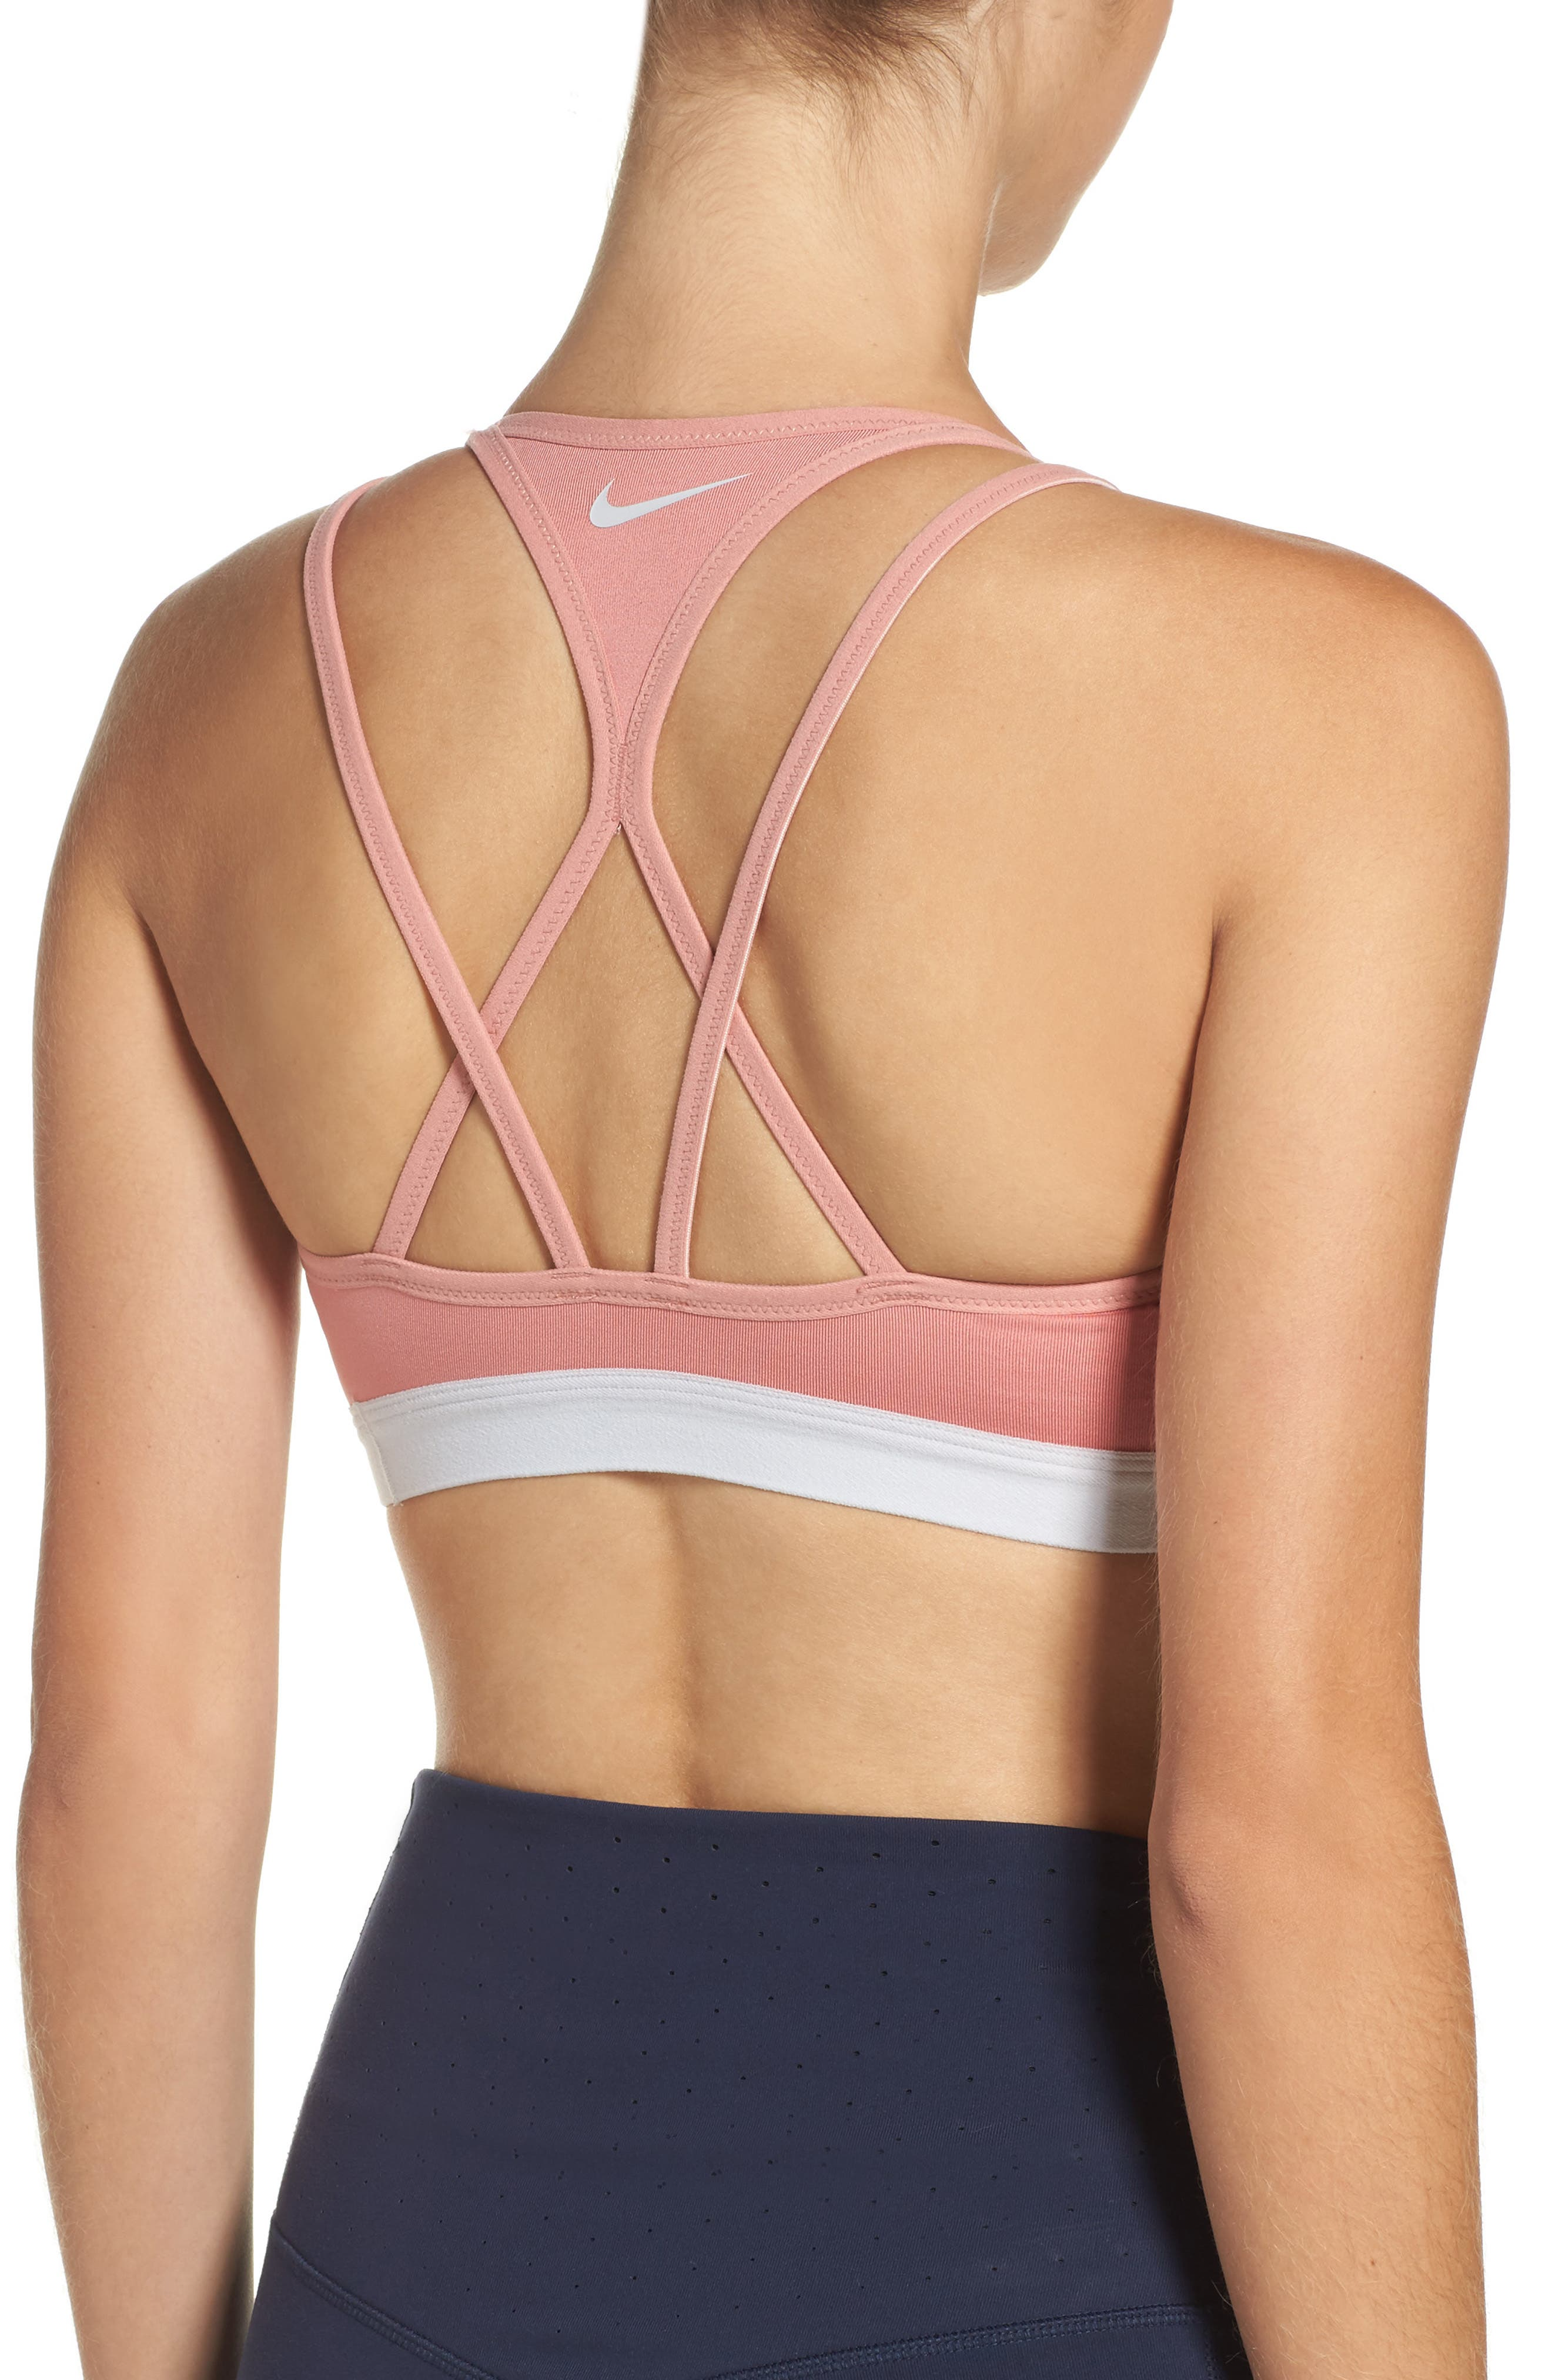 Pro Indy Cooling Sports Bra,                             Alternate thumbnail 3, color,                             Red Stardust/ Platinum